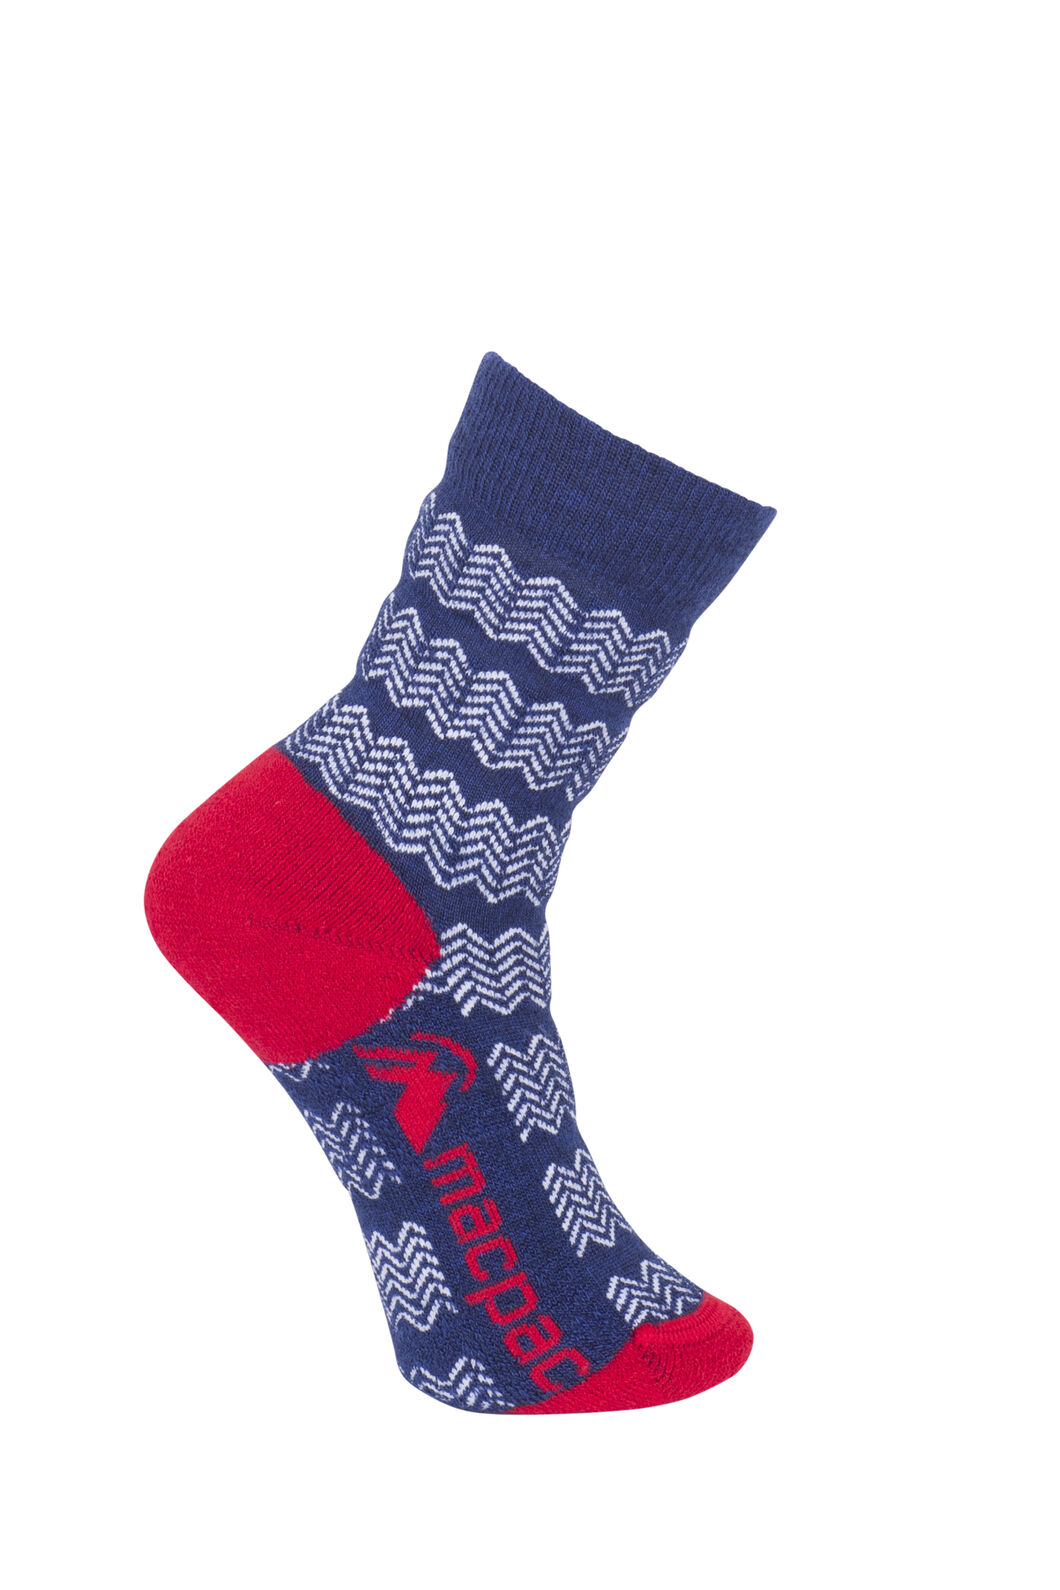 Macpac Footprint Socks Kids', Medieval/White, hi-res